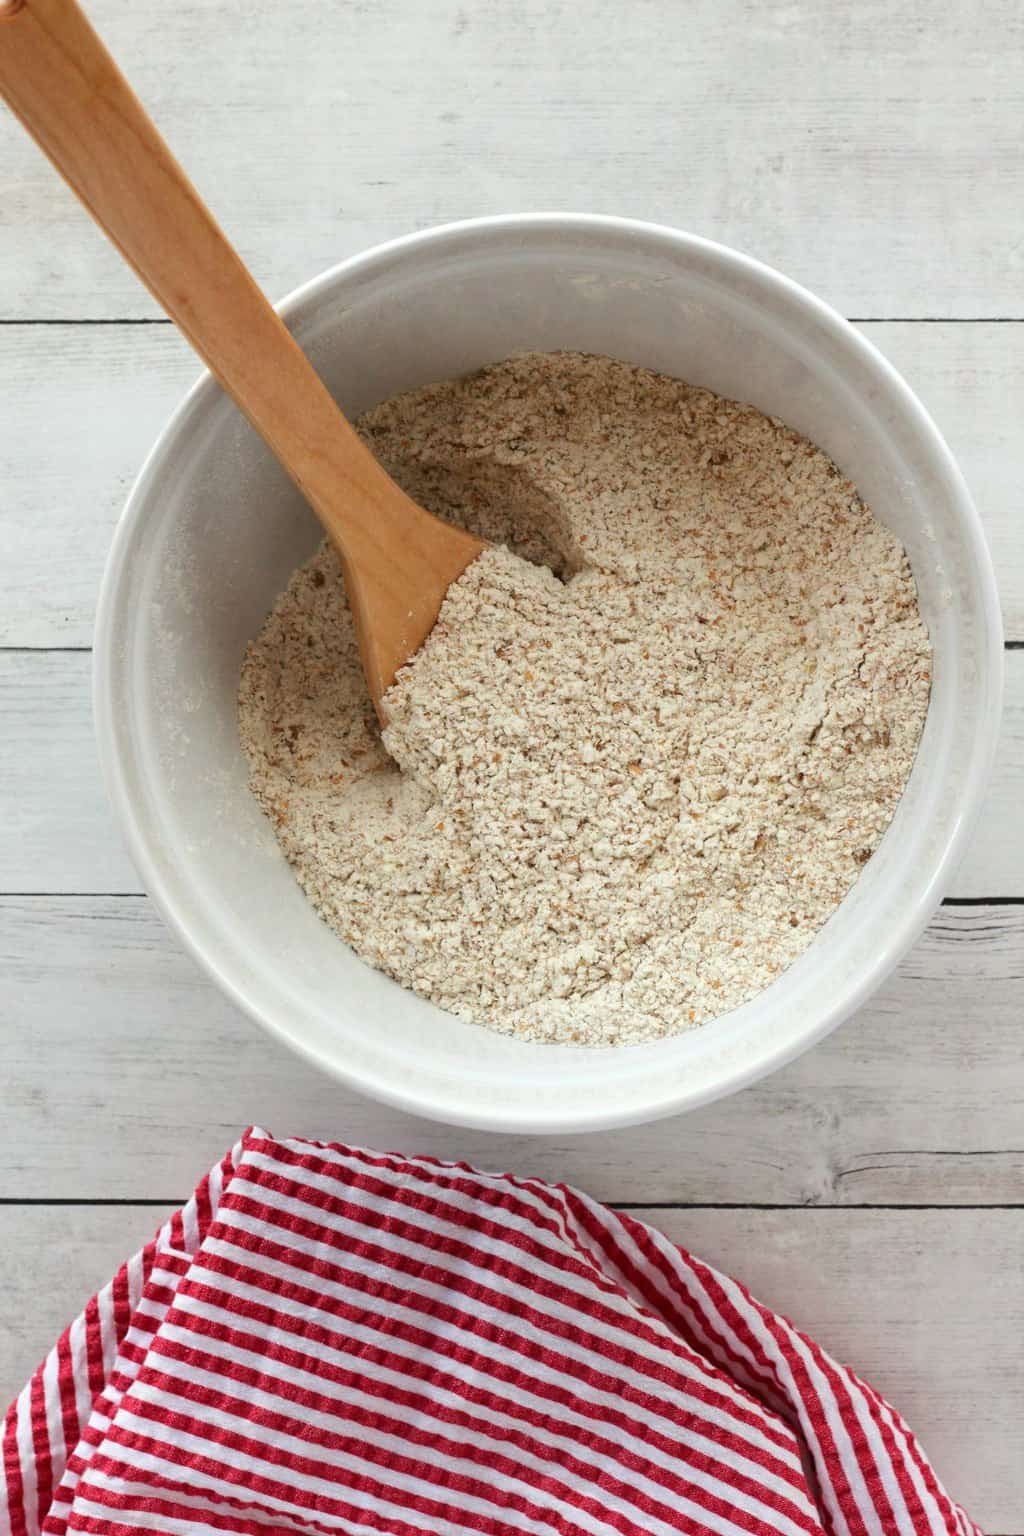 Flour yeast and salt in a mixing bowl with a wooden spoon, ready to make wholewheat bread.